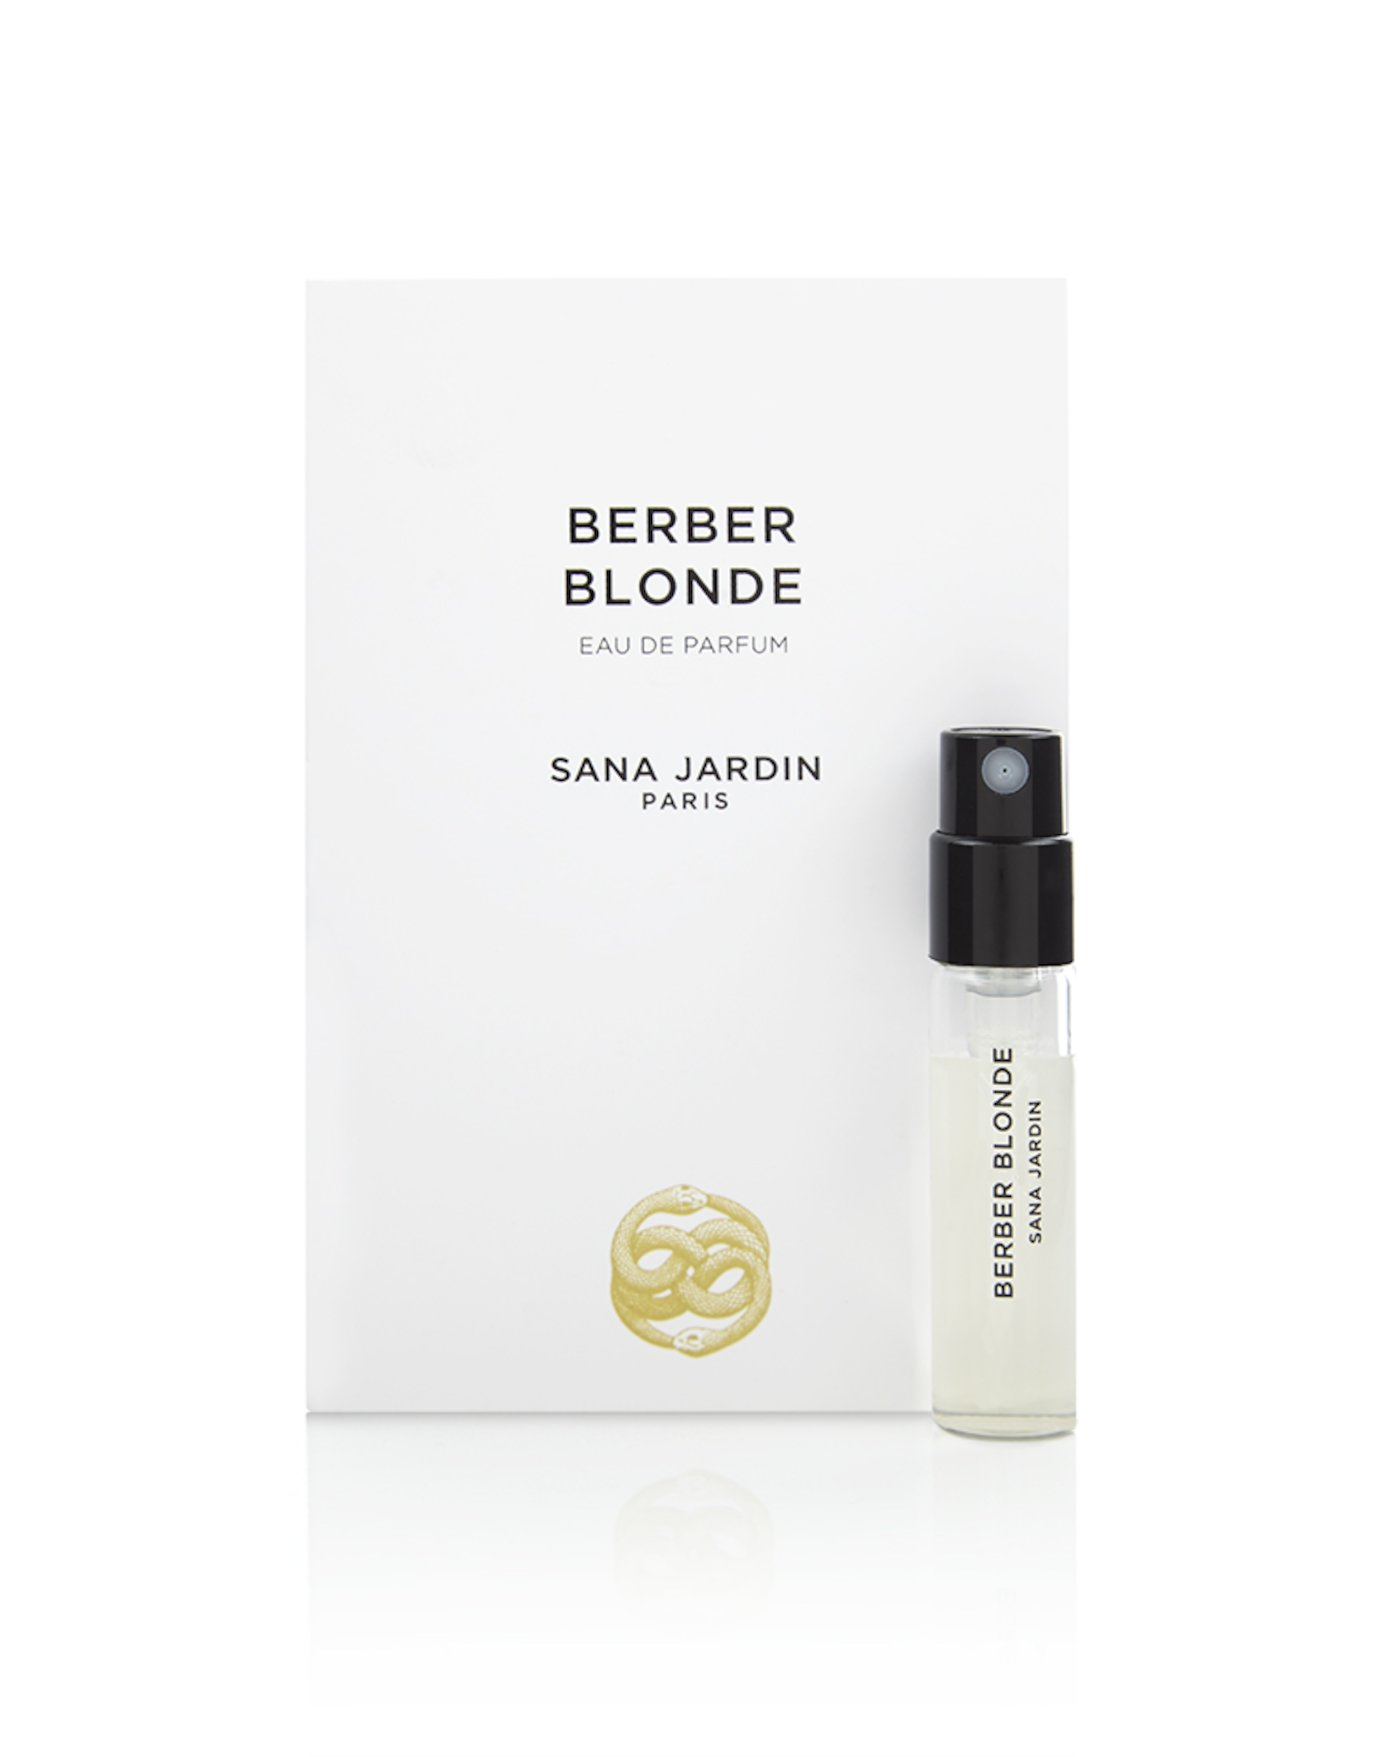 Berber Blonde 2ml in card